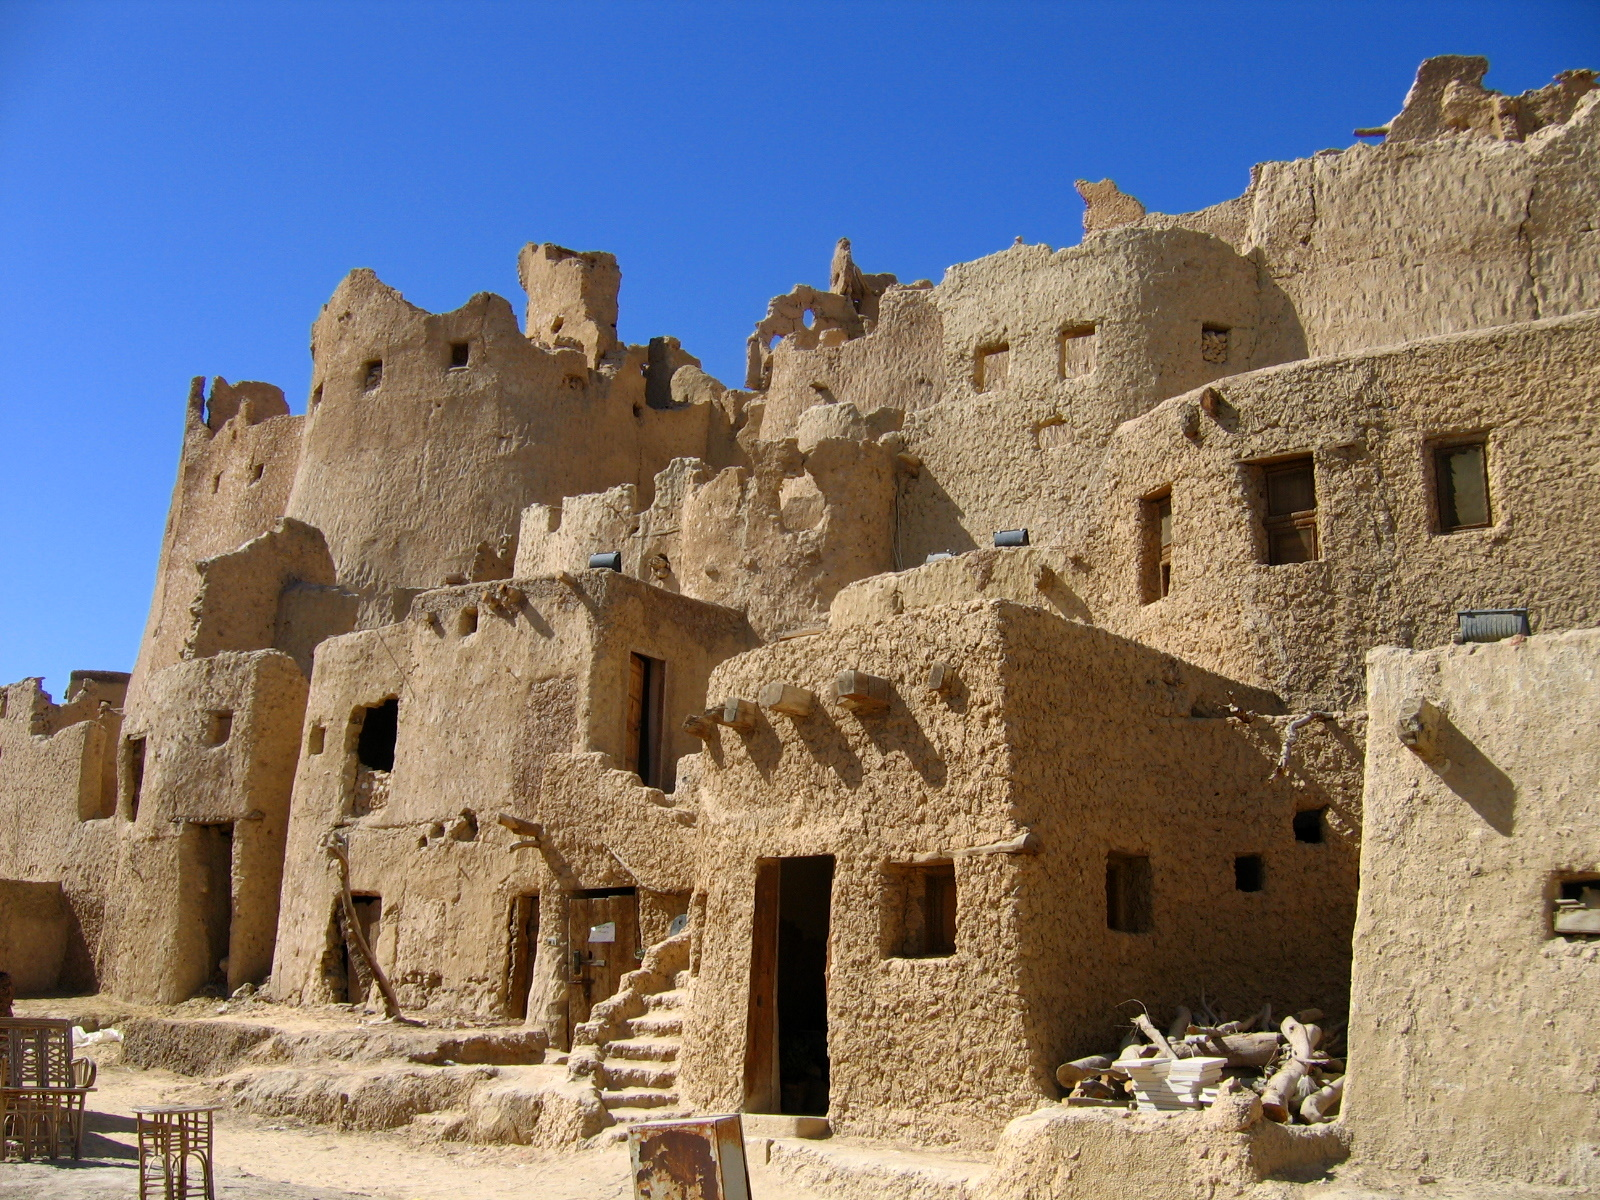 File:Siwa-Homes2009.jpg